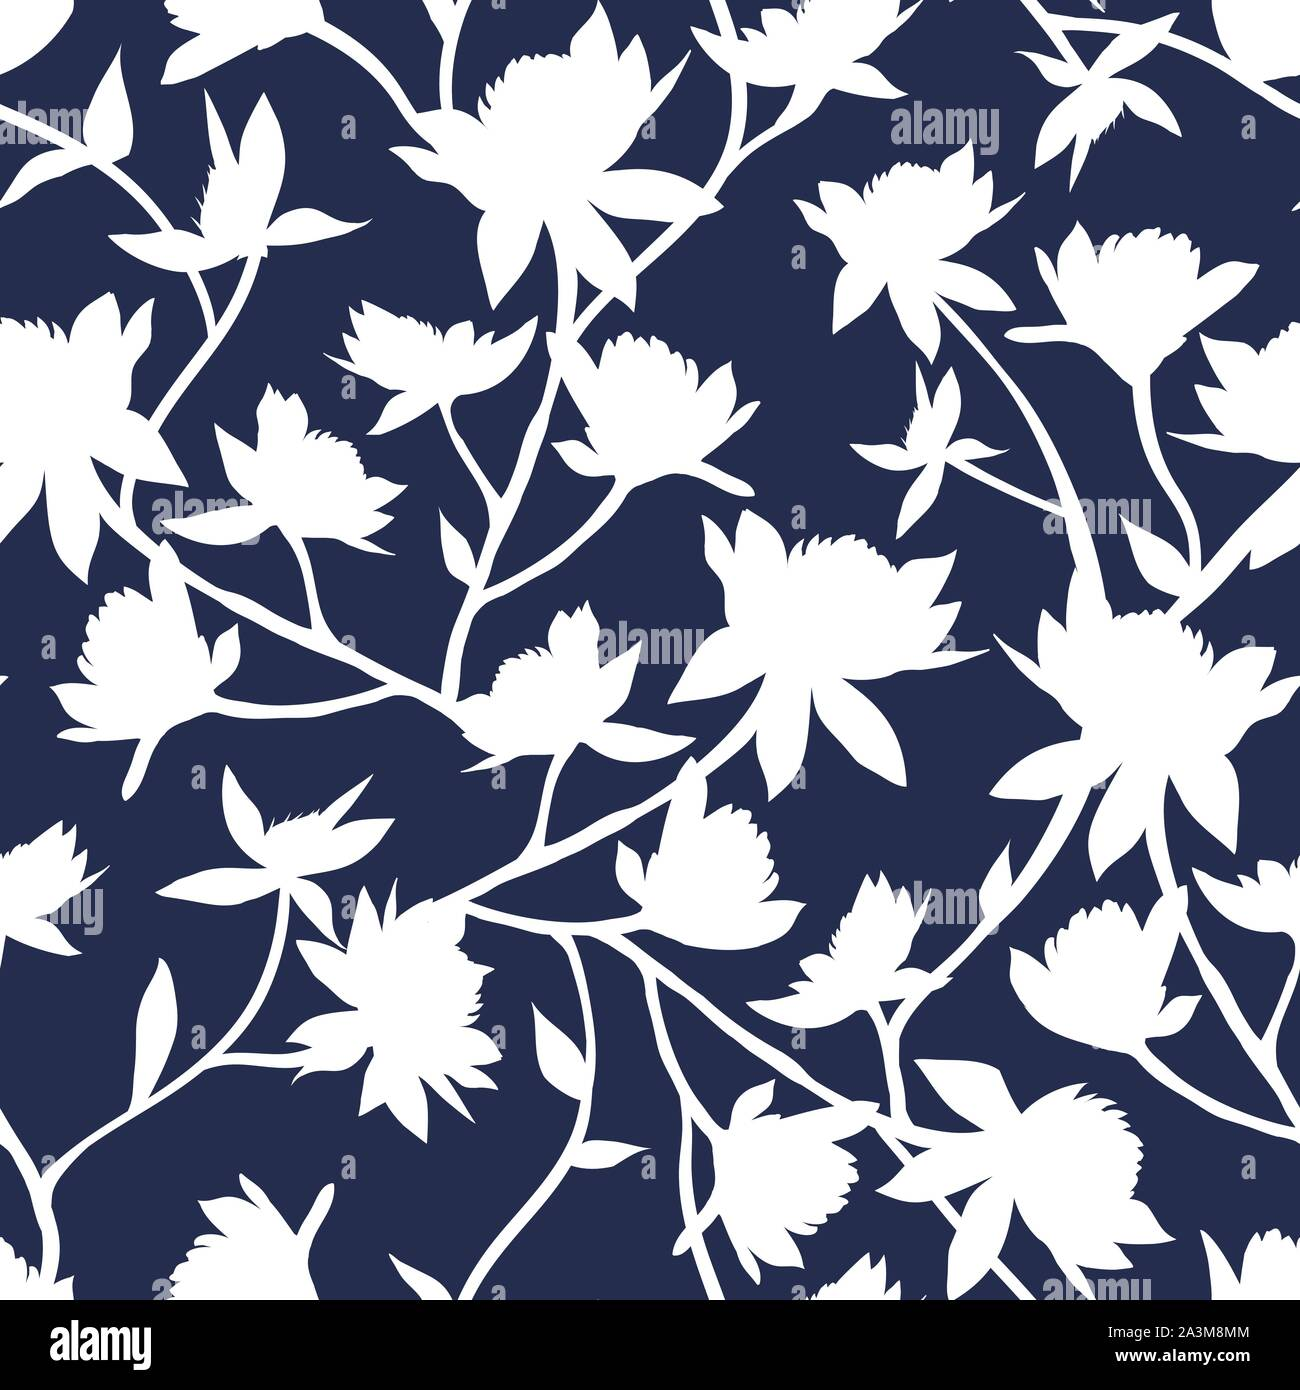 Clover Flowers Seamless Vector Pattern White Silhouettes On Dark